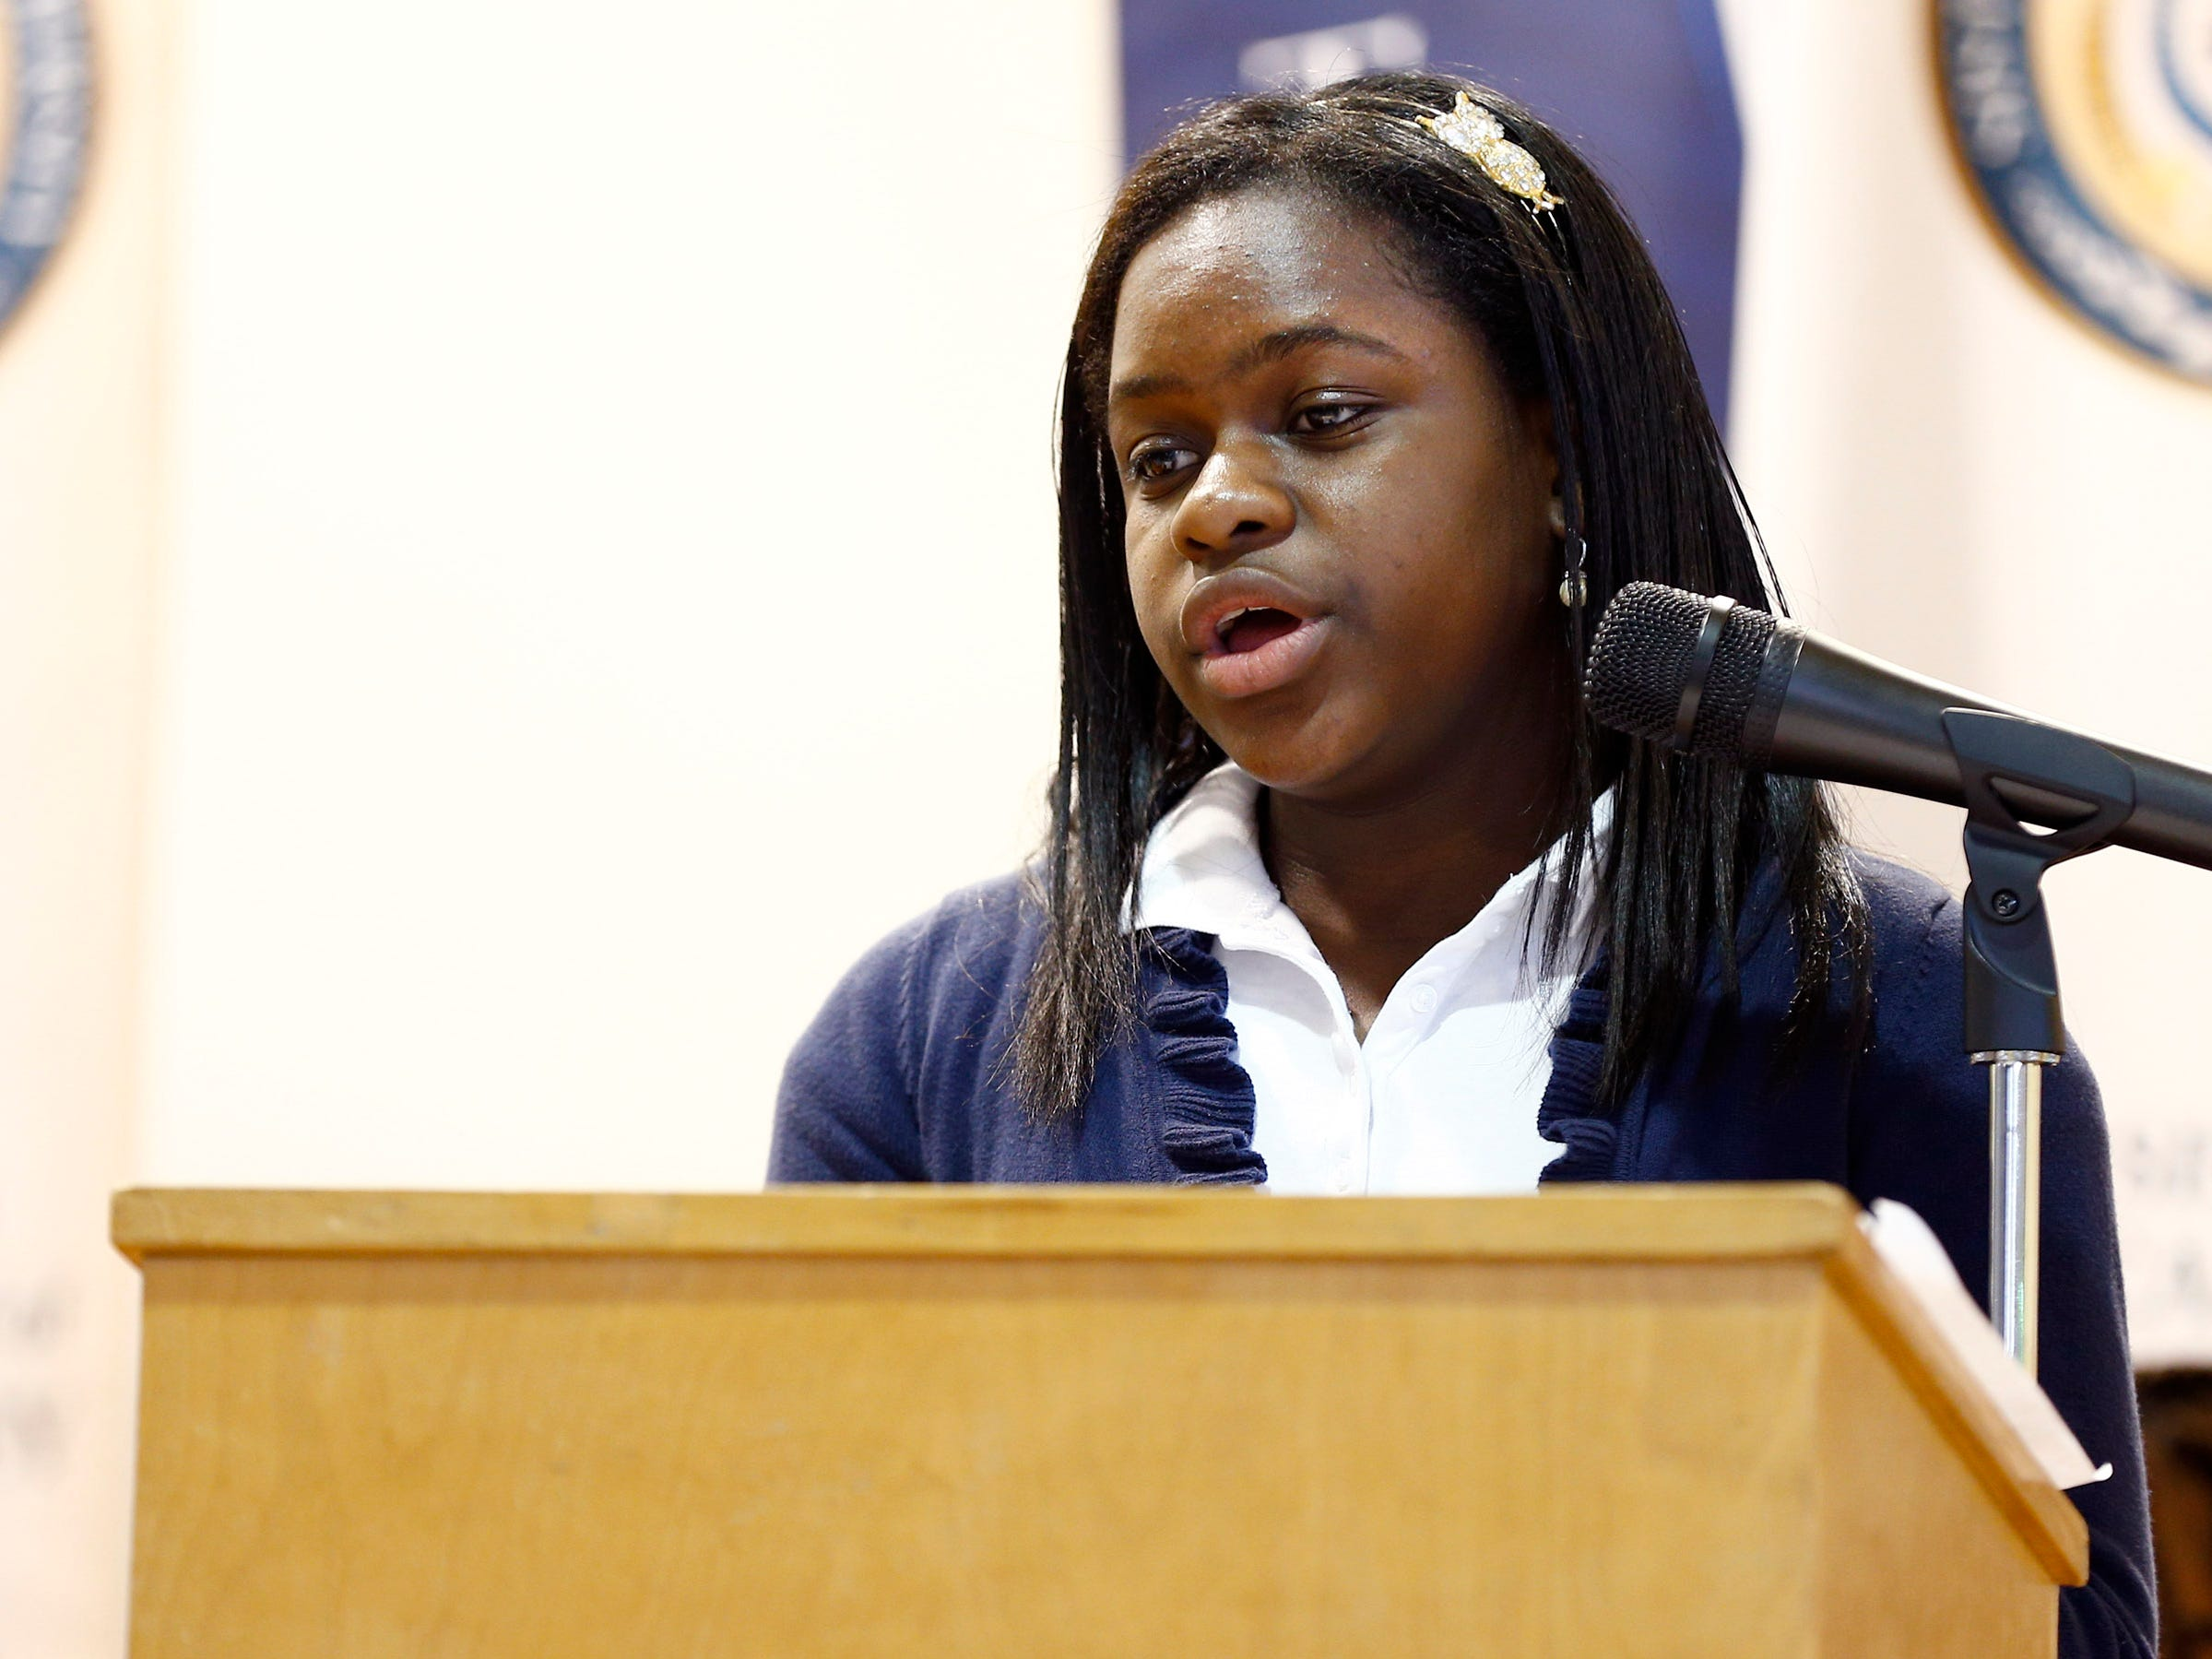 Sisters Academy 7th grader Twayssie Mompoint performs her persuasive essay during the 8th Annual Miller Speaking Contest at the Asbury Park school Thursday, March 14, 2019.